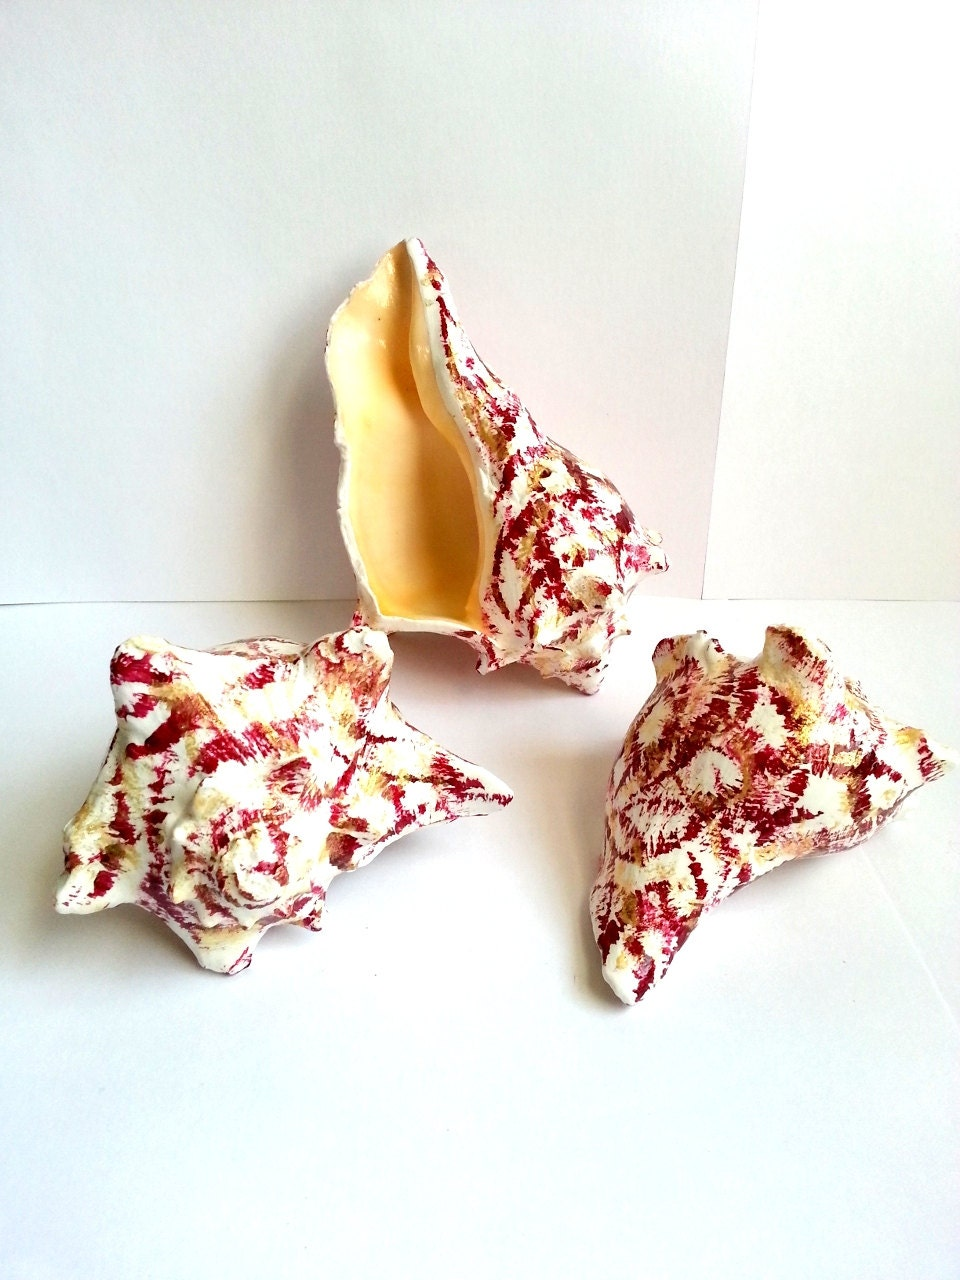 Hand painted conch shells, red coastal home decor, beach home accents - beachseacrafts